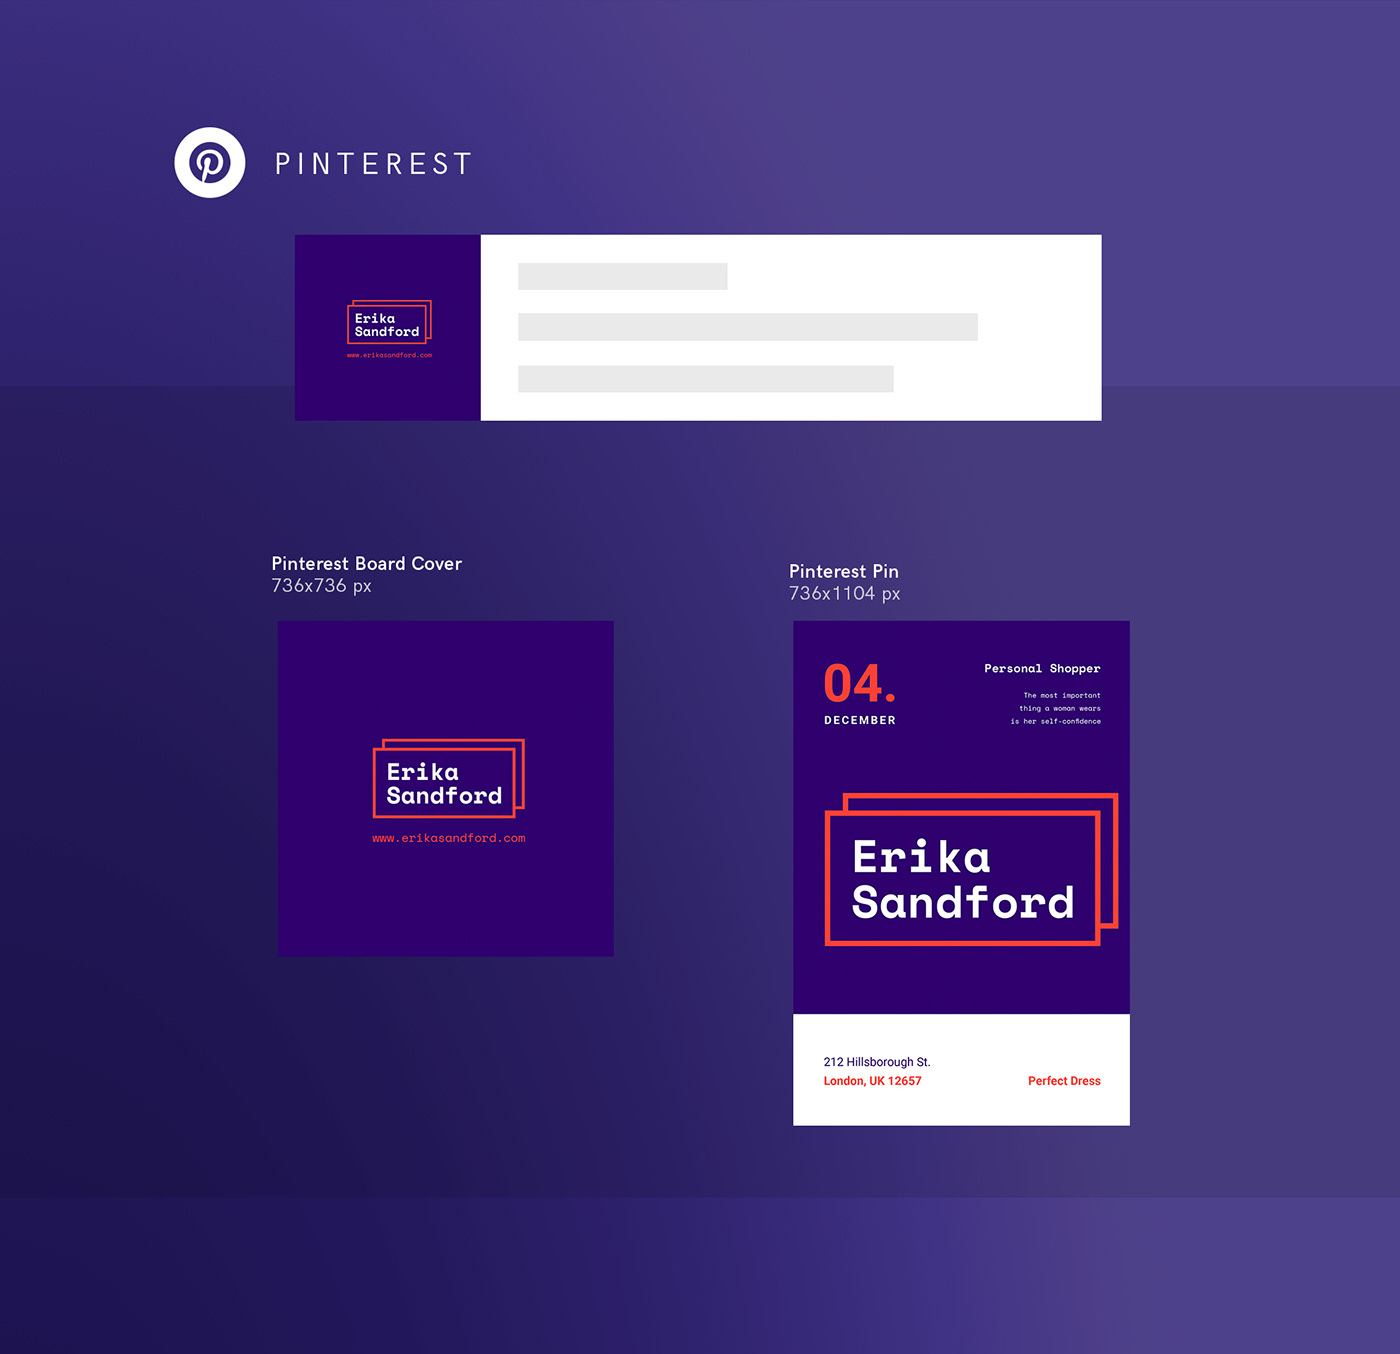 Personal Shopper | Free Download Design Templates on Behance